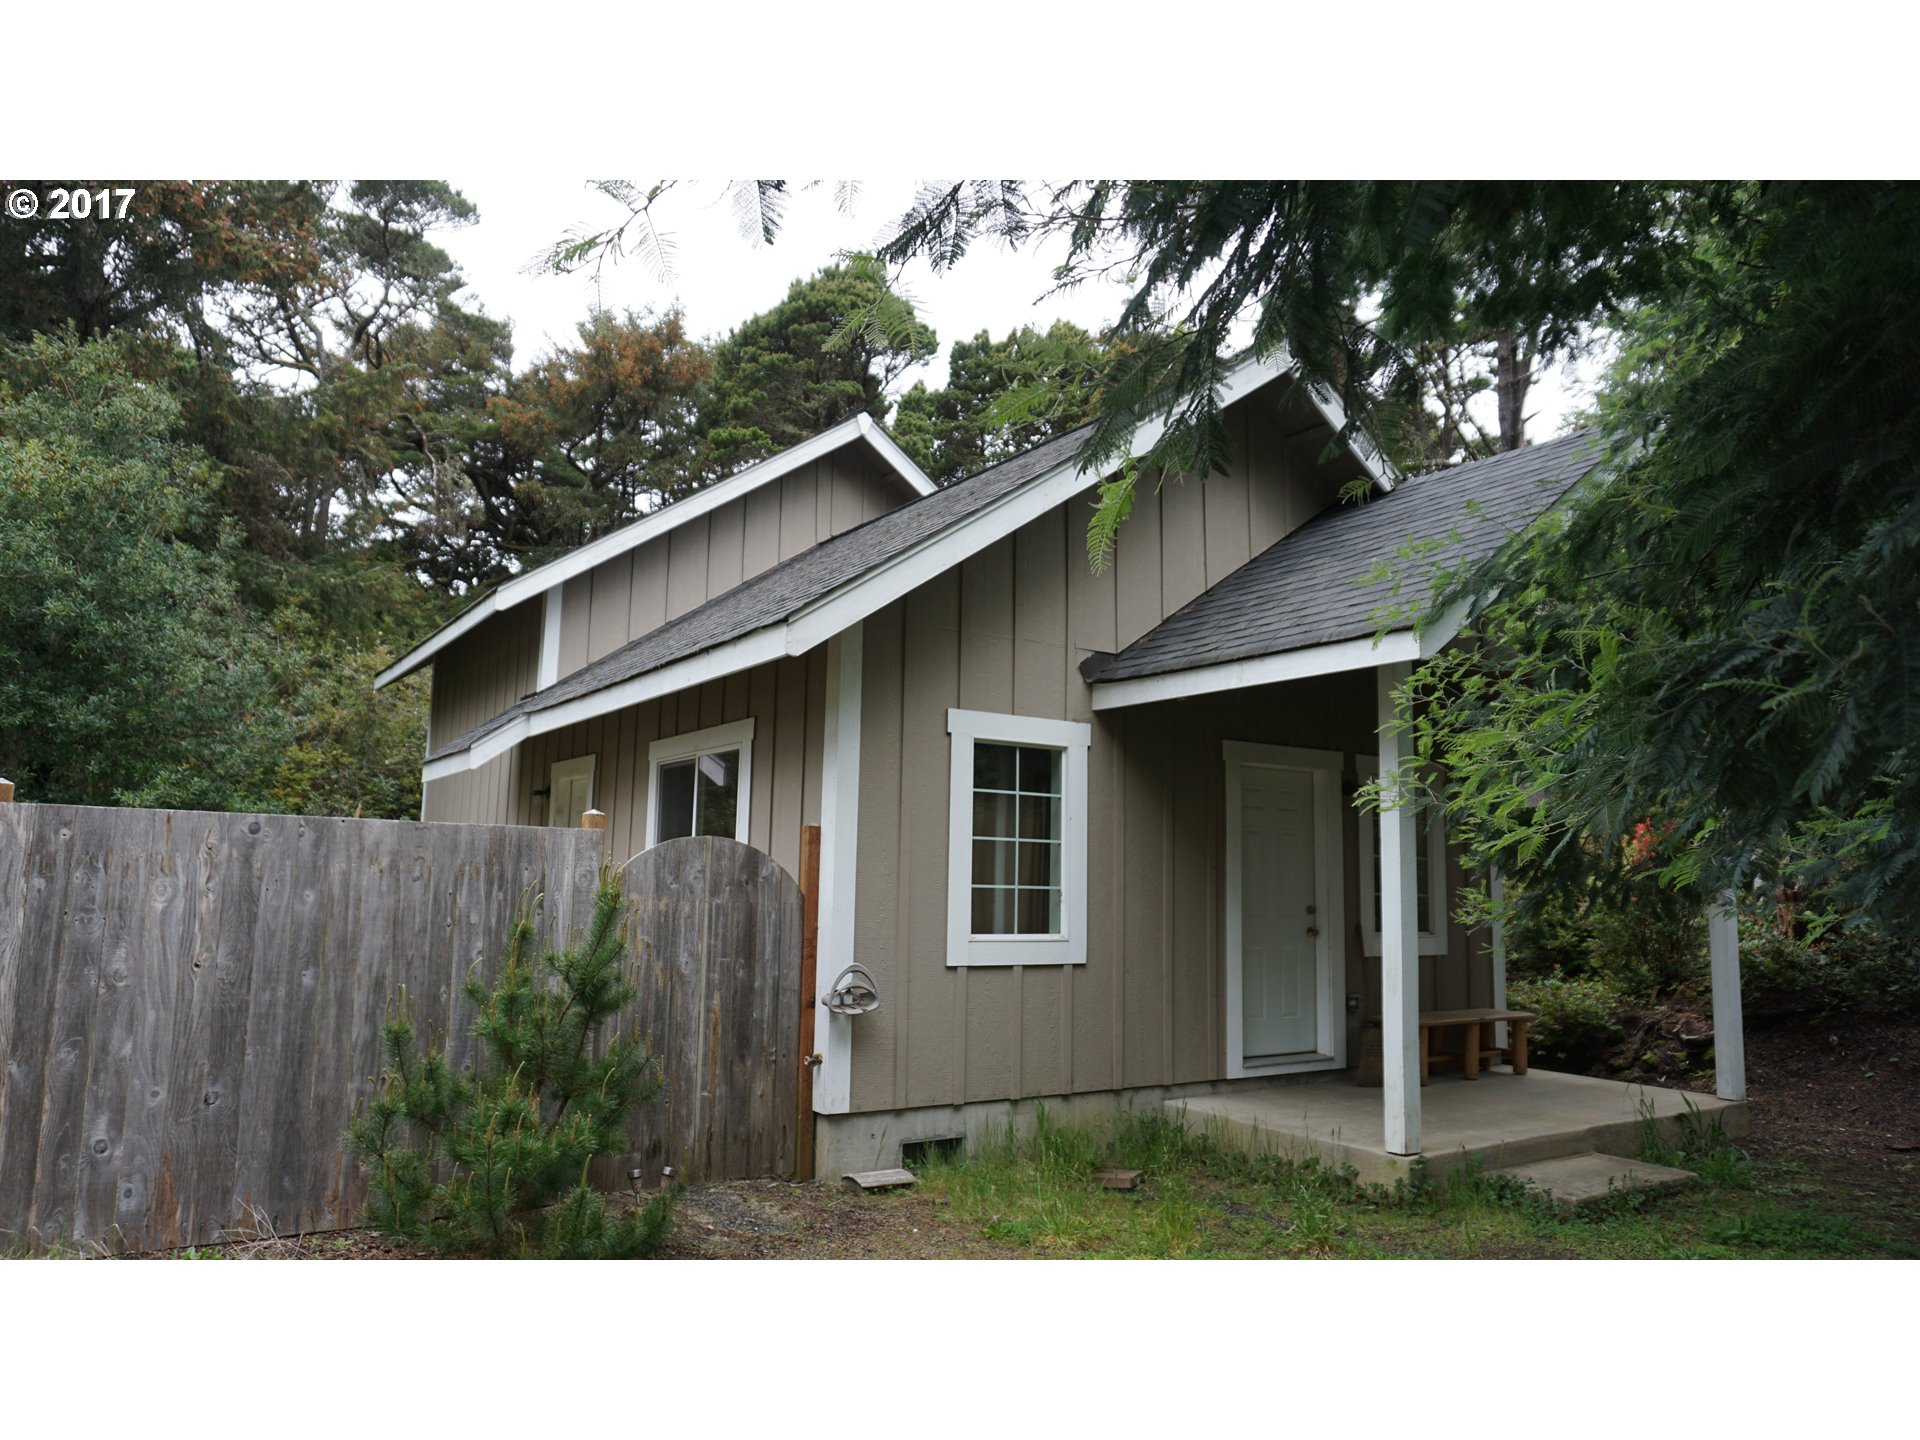 88584 4TH AVE, Florence, OR 97439